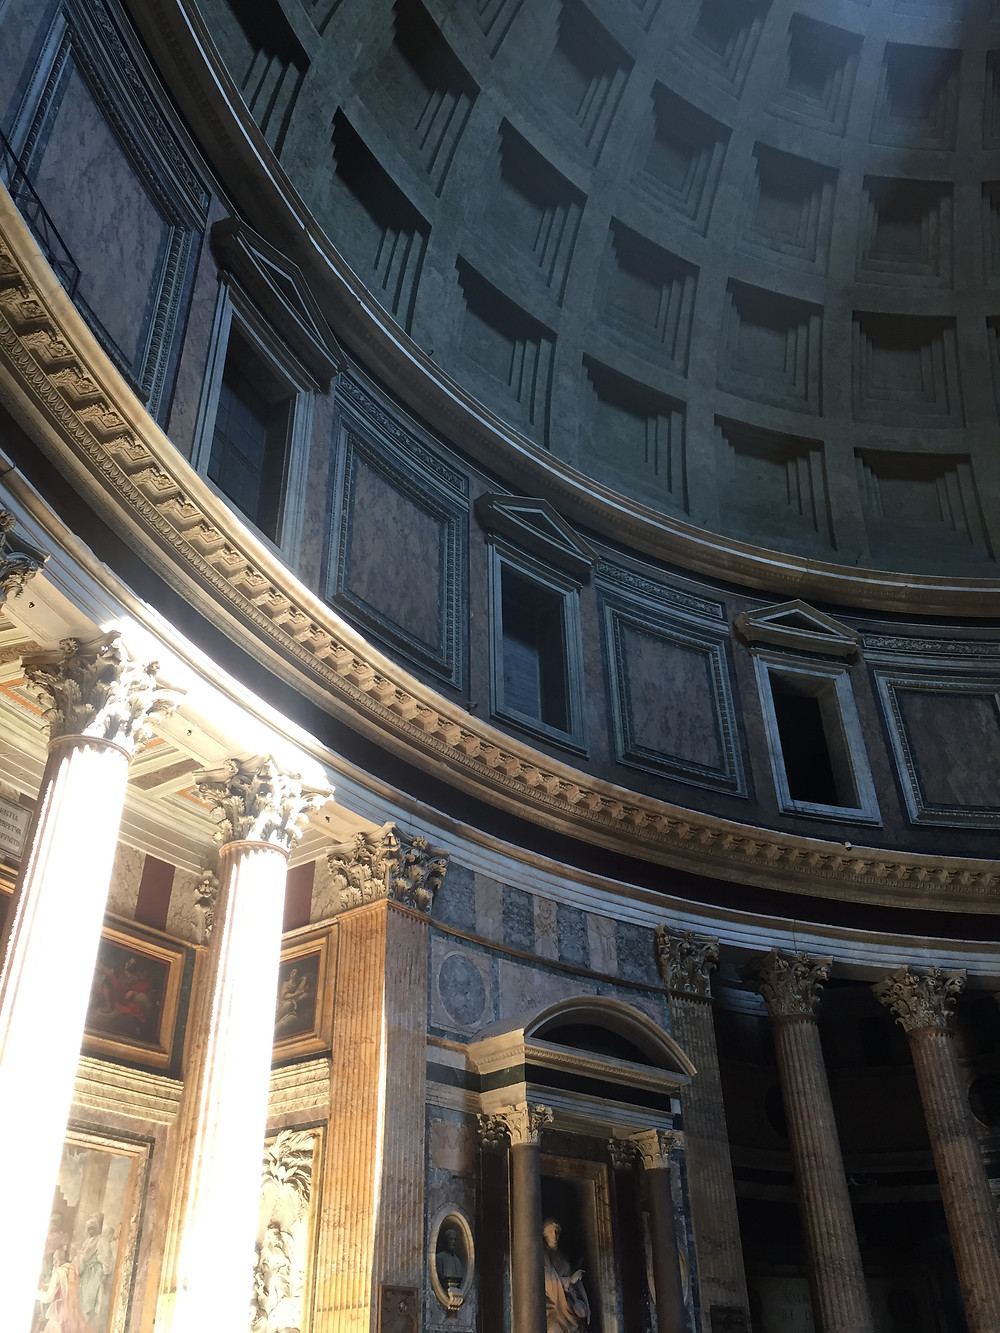 Inside of the Pantheon light streaming in and illuminating inside